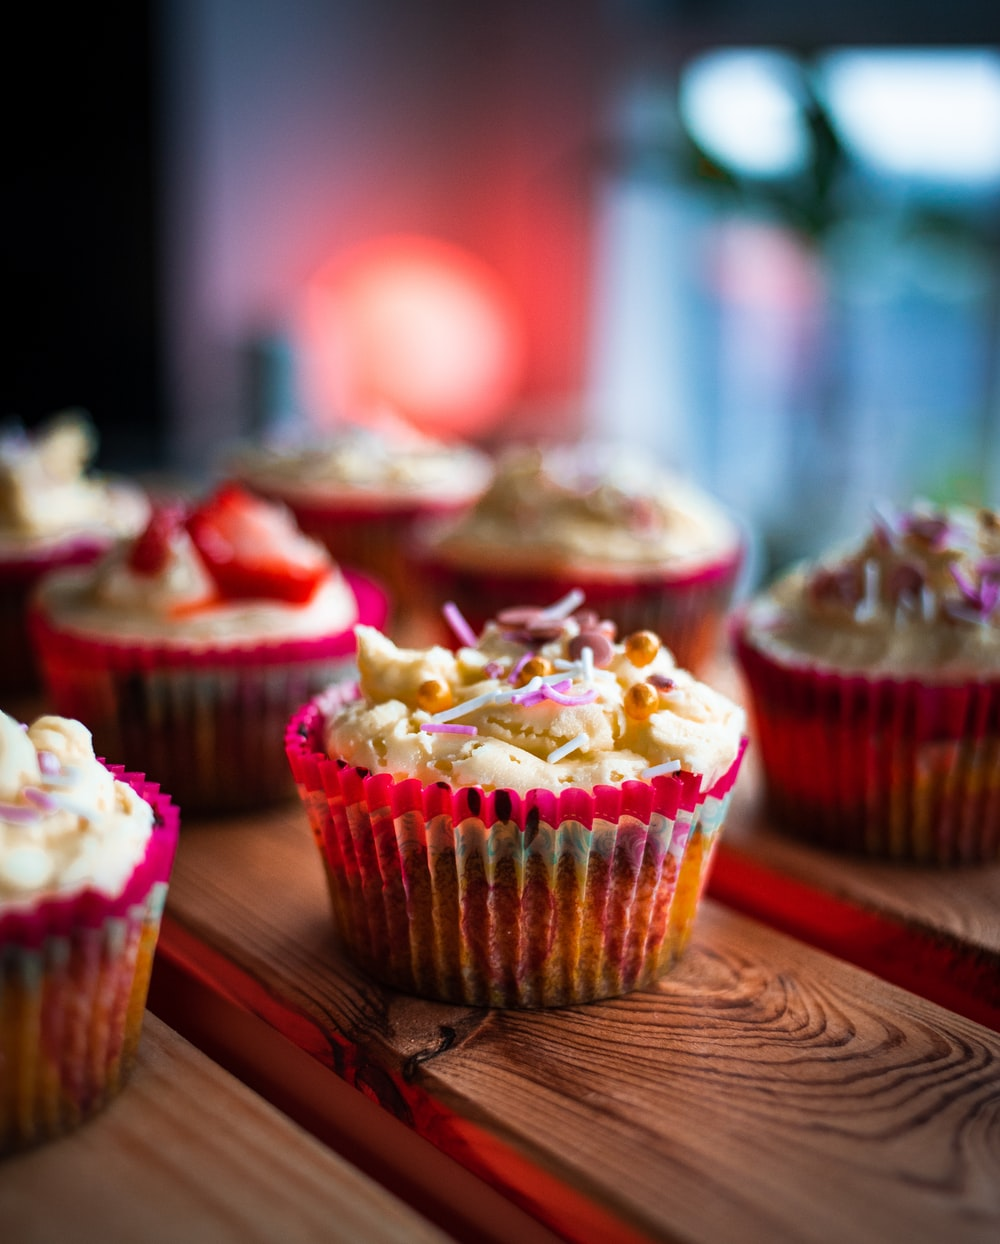 pink cupcake on brown wooden table